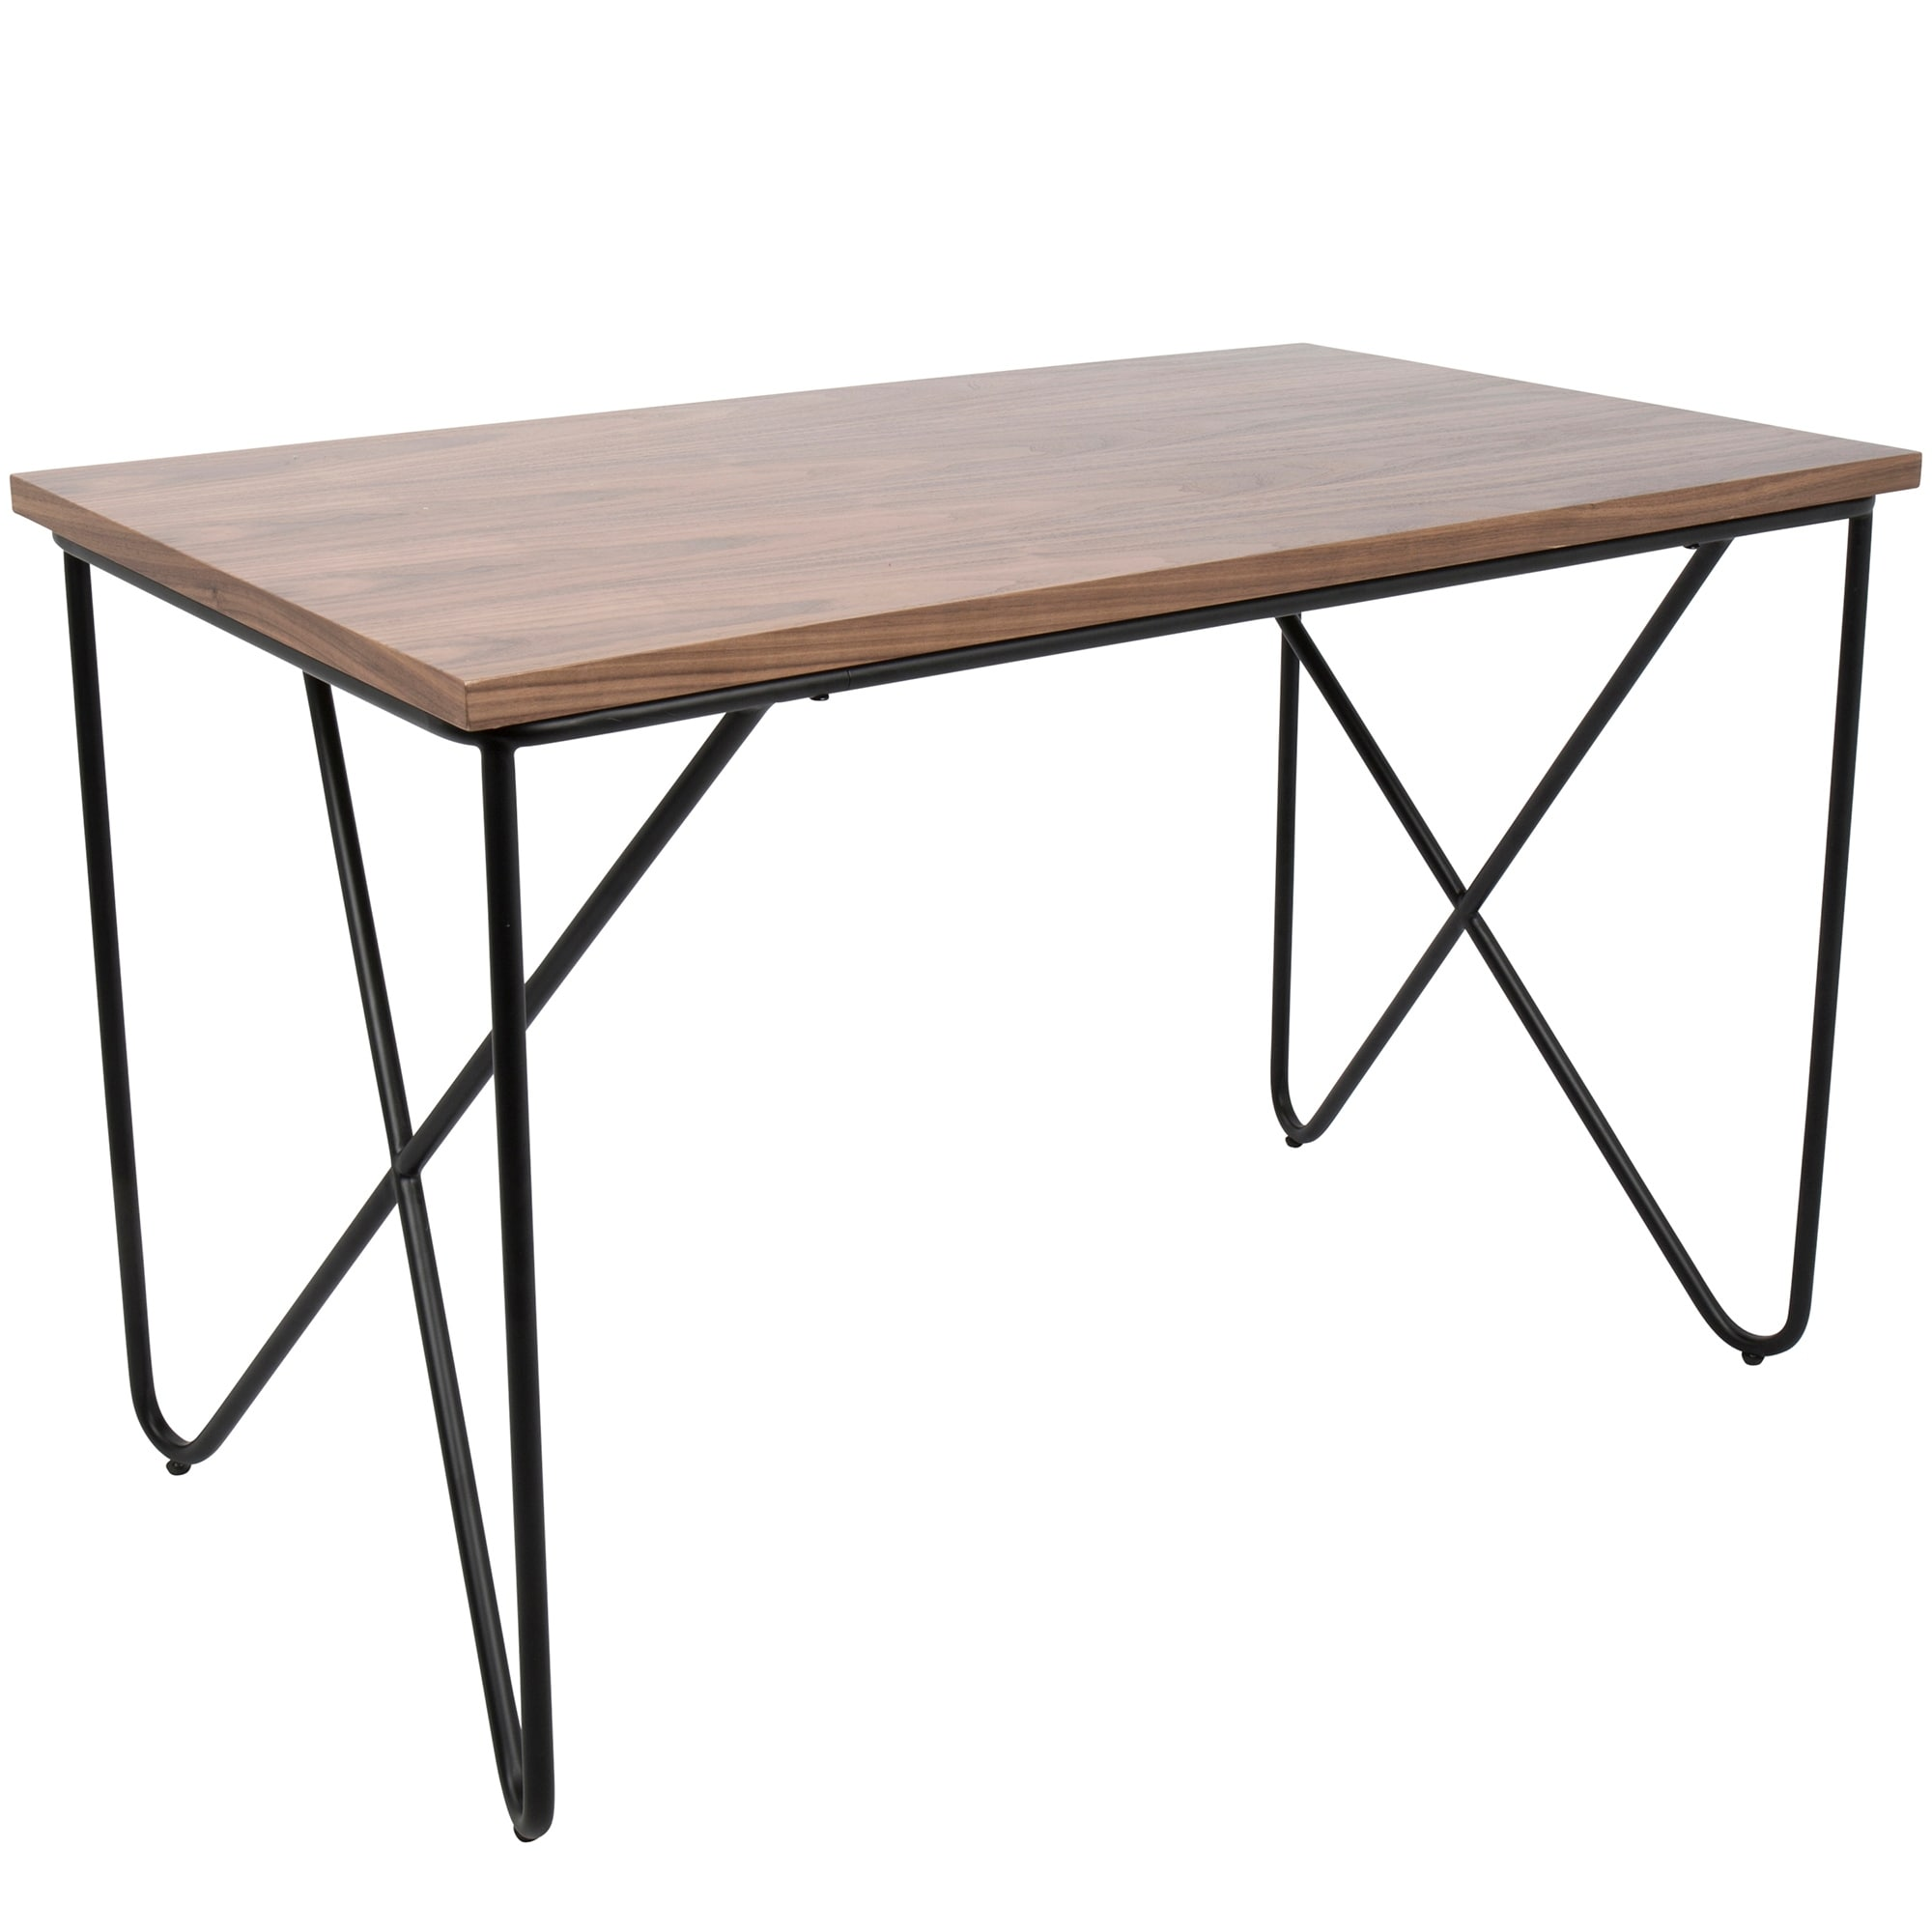 Image of: Shop Black Friday Deals On Loft Mid Century Modern Office Desk With Black Frame And Walnut Wood Top Overstock 17652301